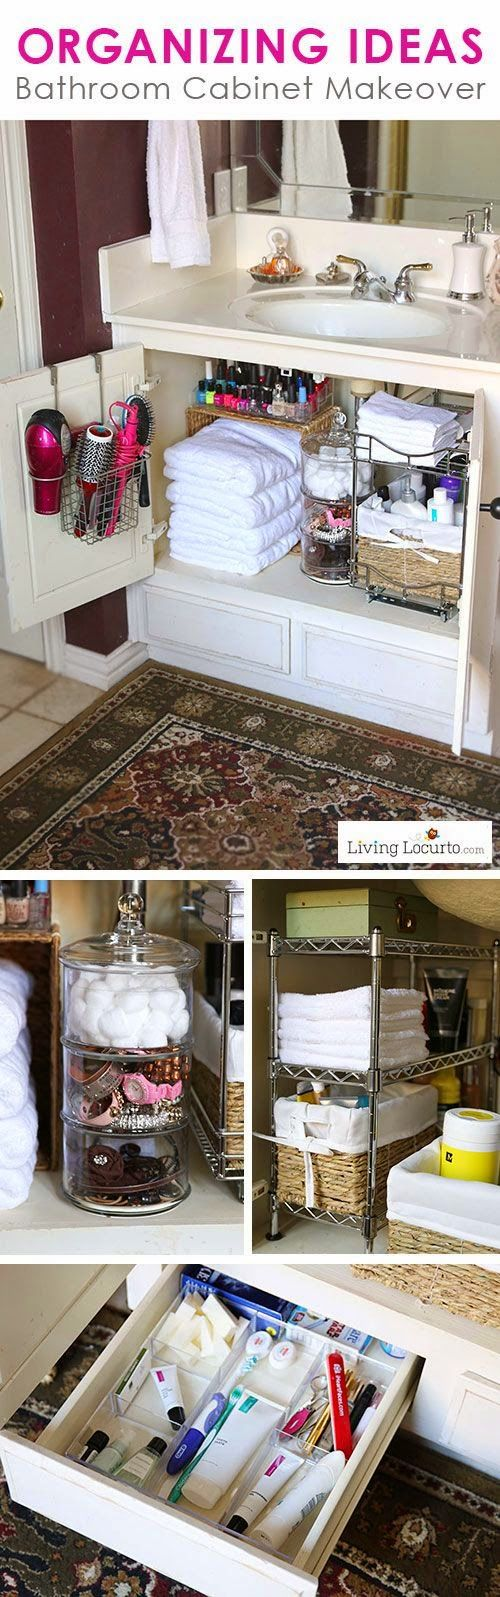 Quick Organizing Ideas For Your Bathroom Makeup Storage - Small bathroom makeup storage ideas